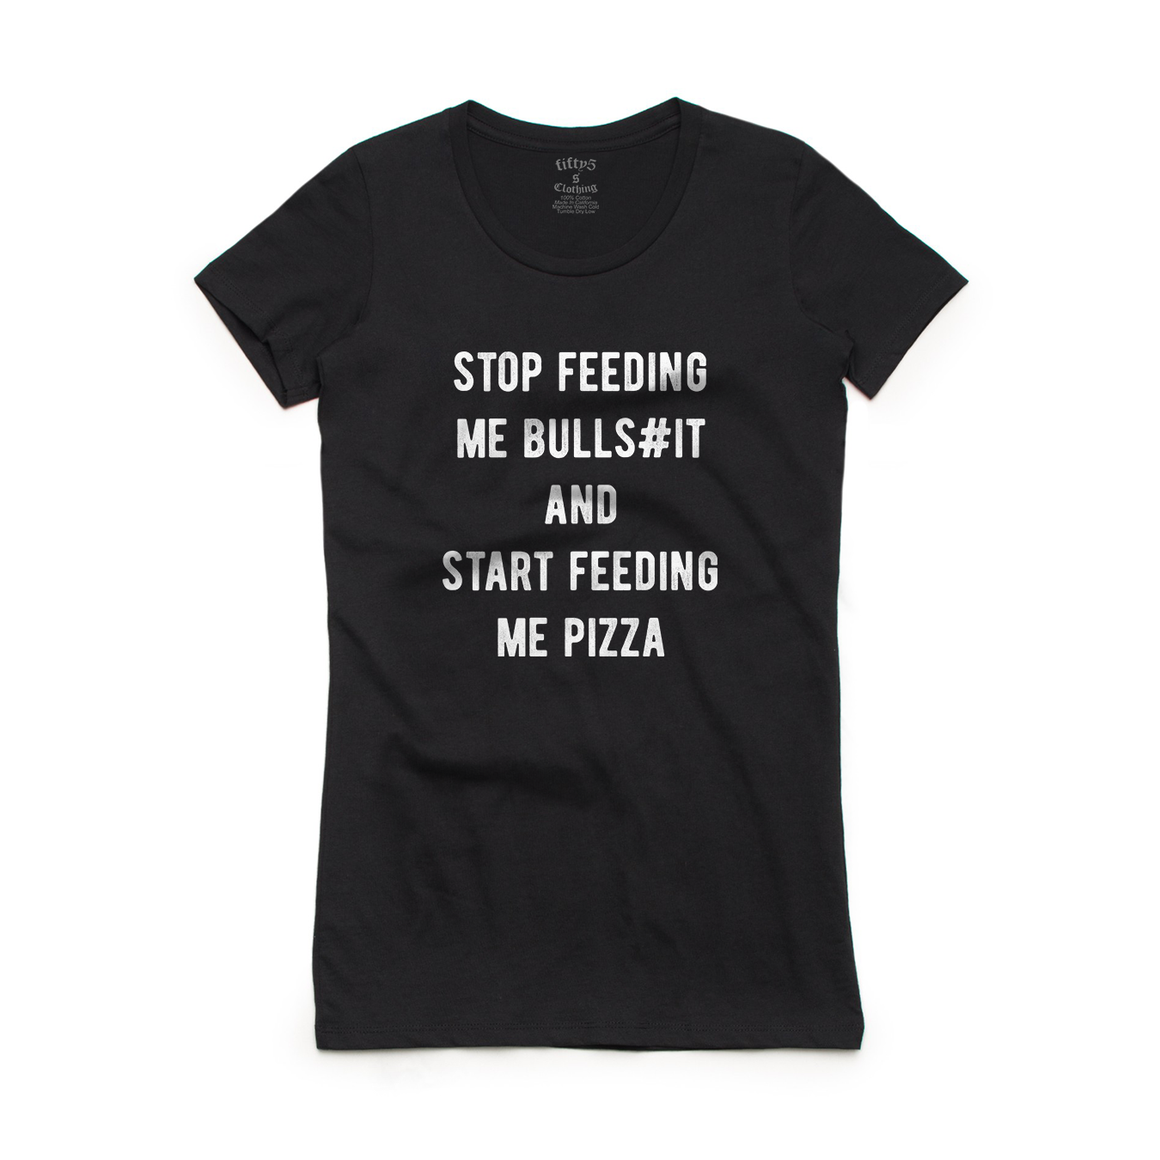 Fifty5 Clothing Start Feeding Me Pizza Women's Crew Neck T-Shirt